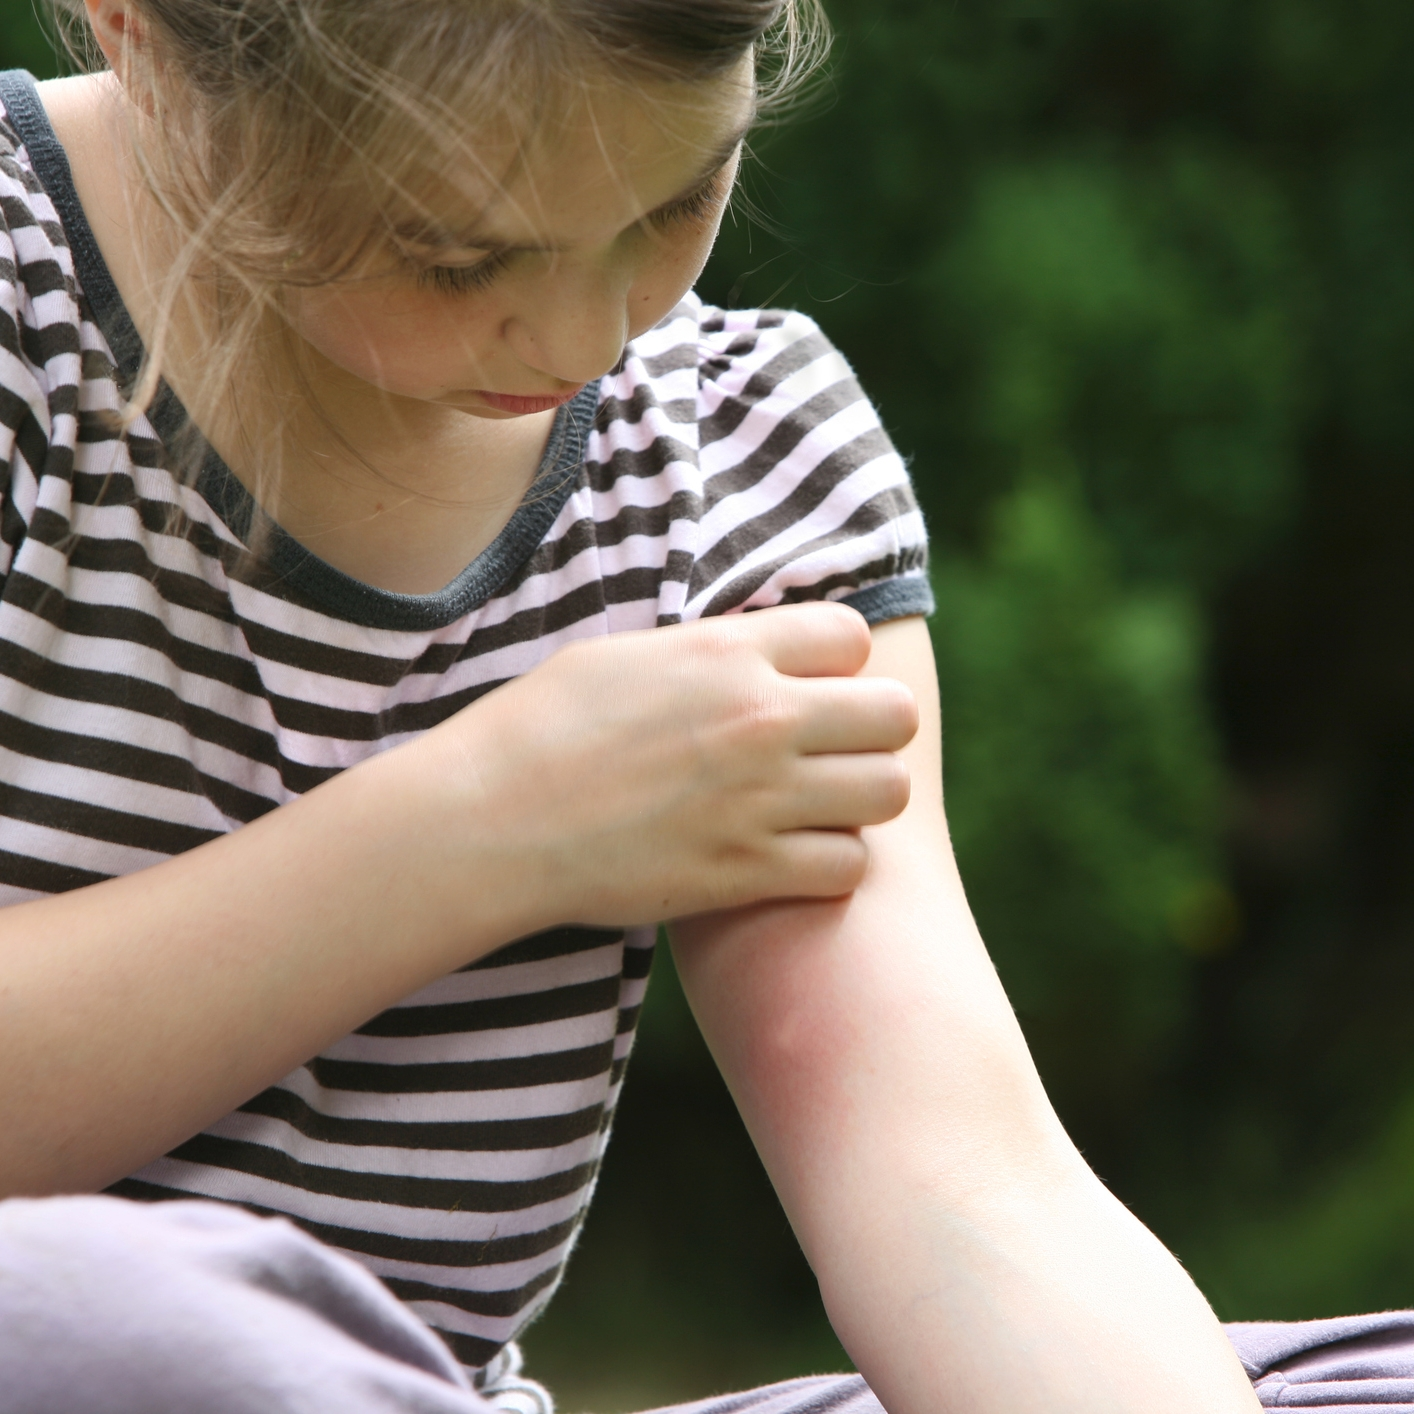 FIRST AID - Get natural relief for itchy skin, bug bites, inflammation, bruising, sprains and contusions with natural oils, homeopathetic gels, salves and balms.